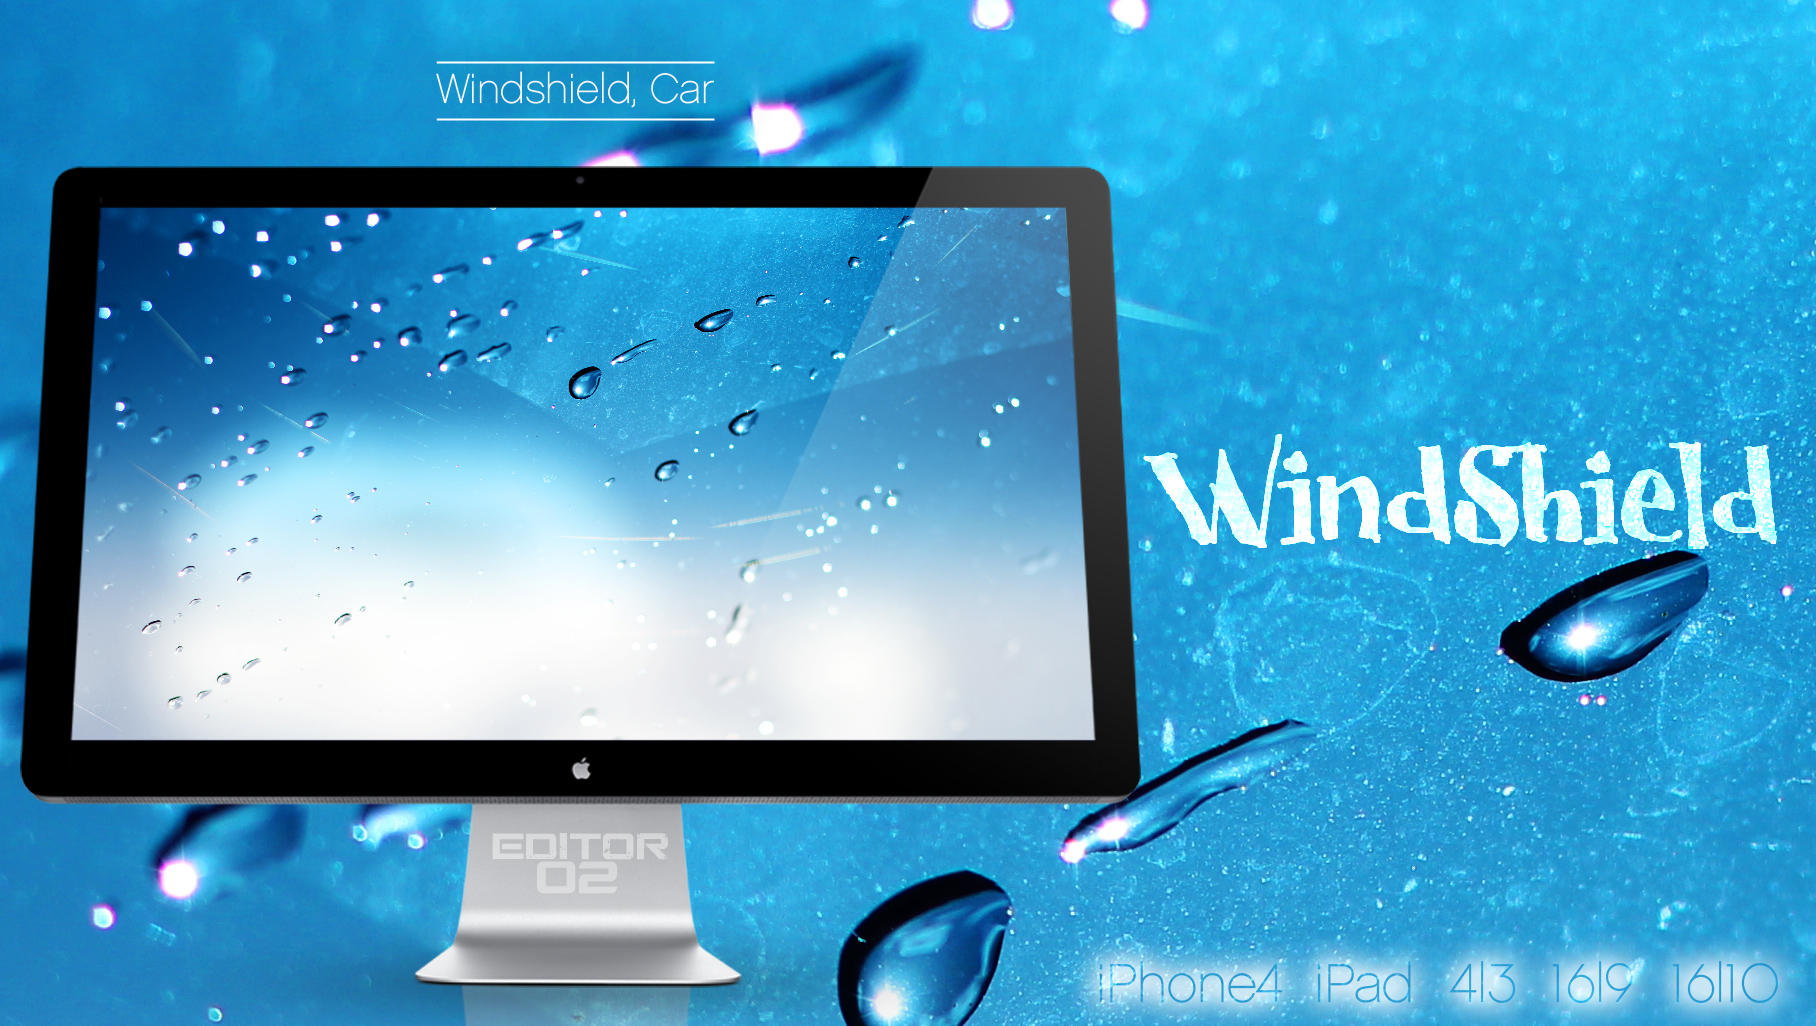 Windshield - Wallpaper by GavinAsh